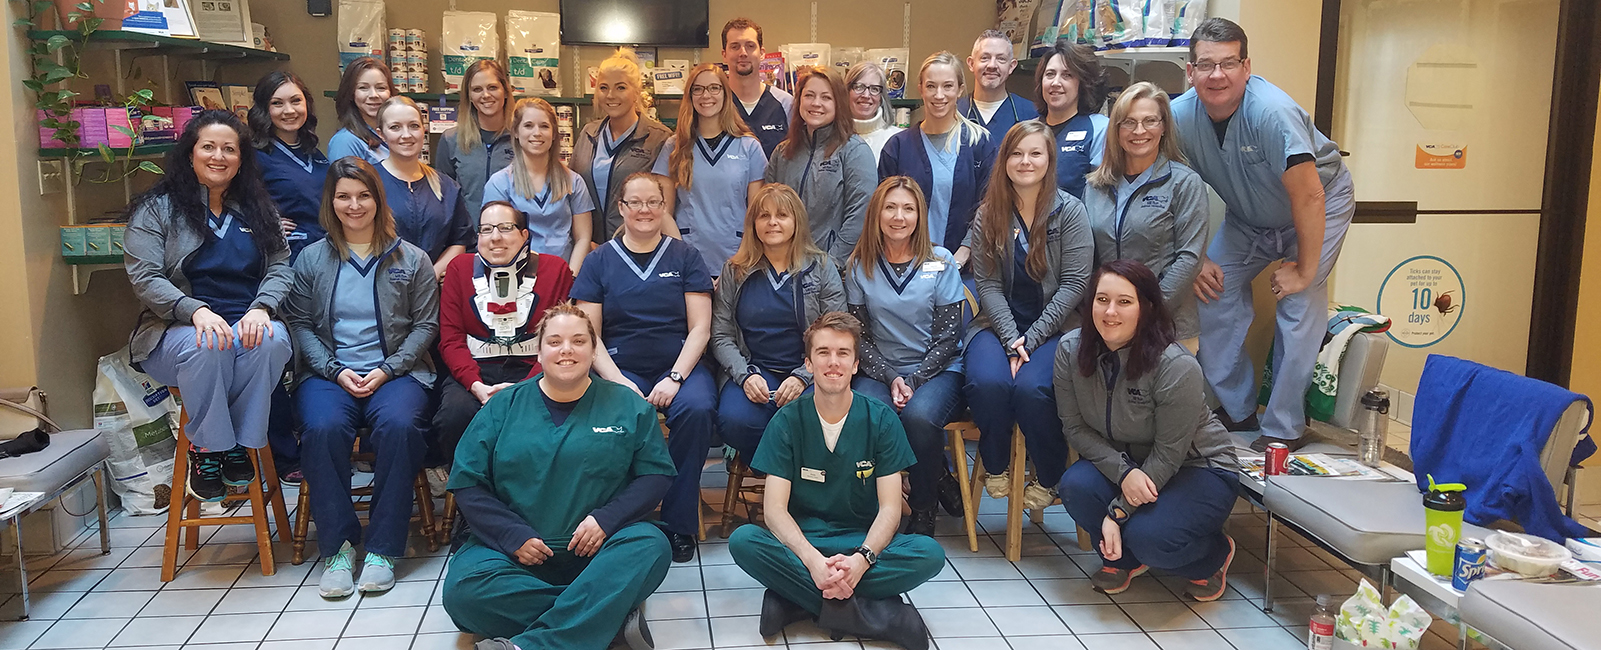 Homepage Team Picture of VCA Mill Run Animal Hospital